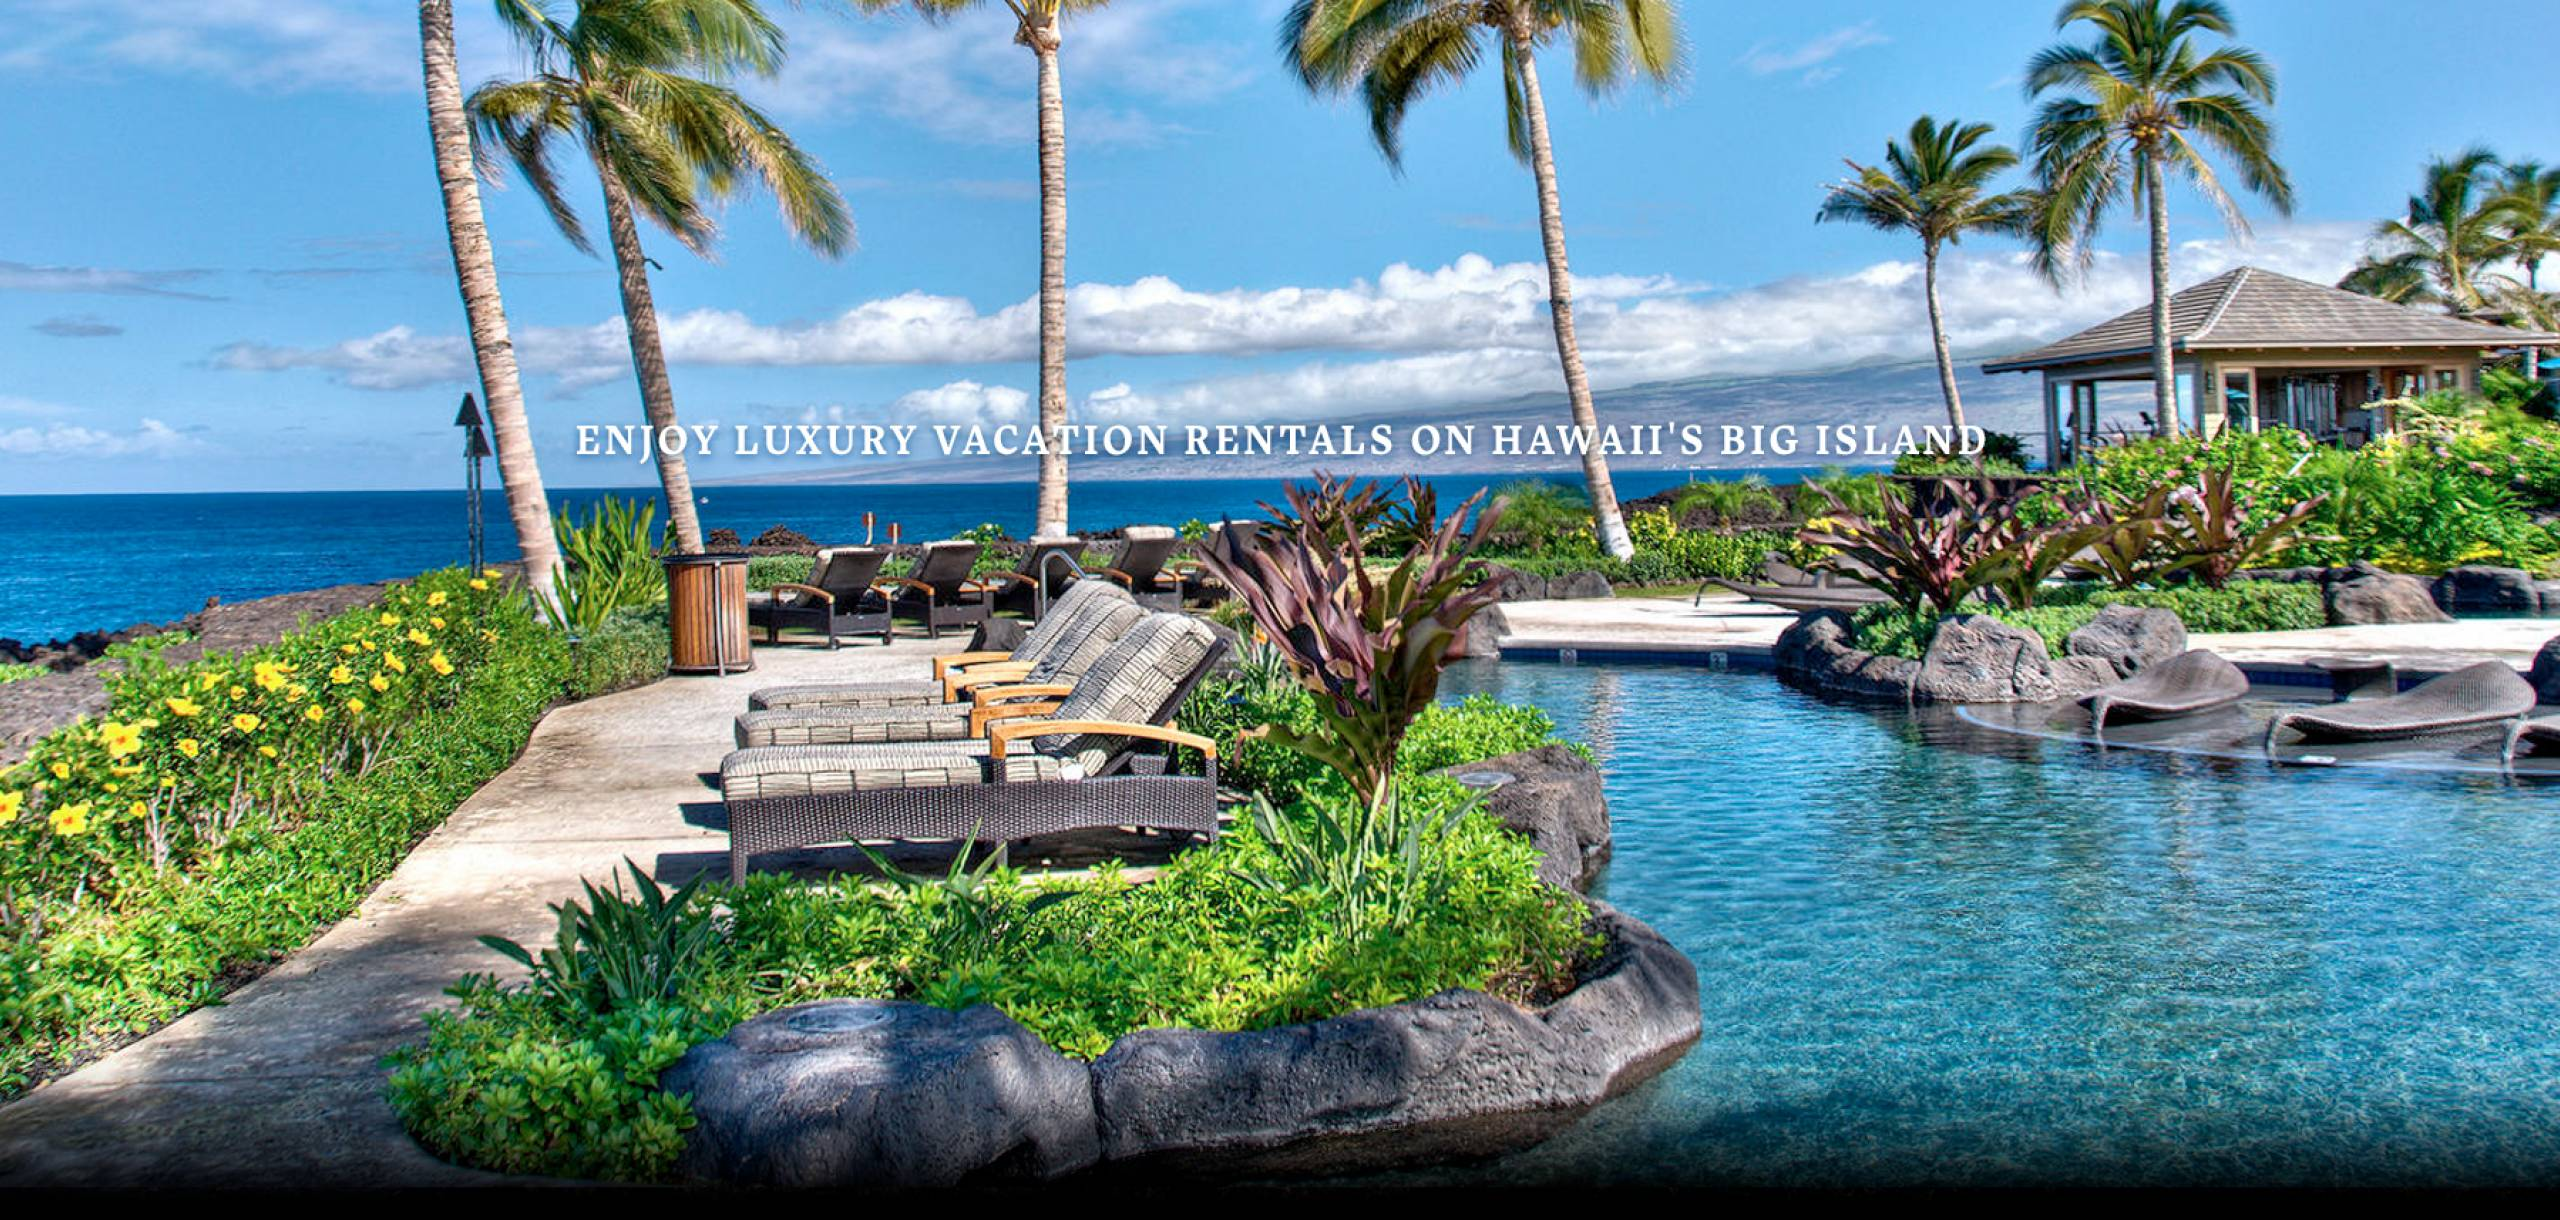 Hawaii Luxury Vacation Retreats